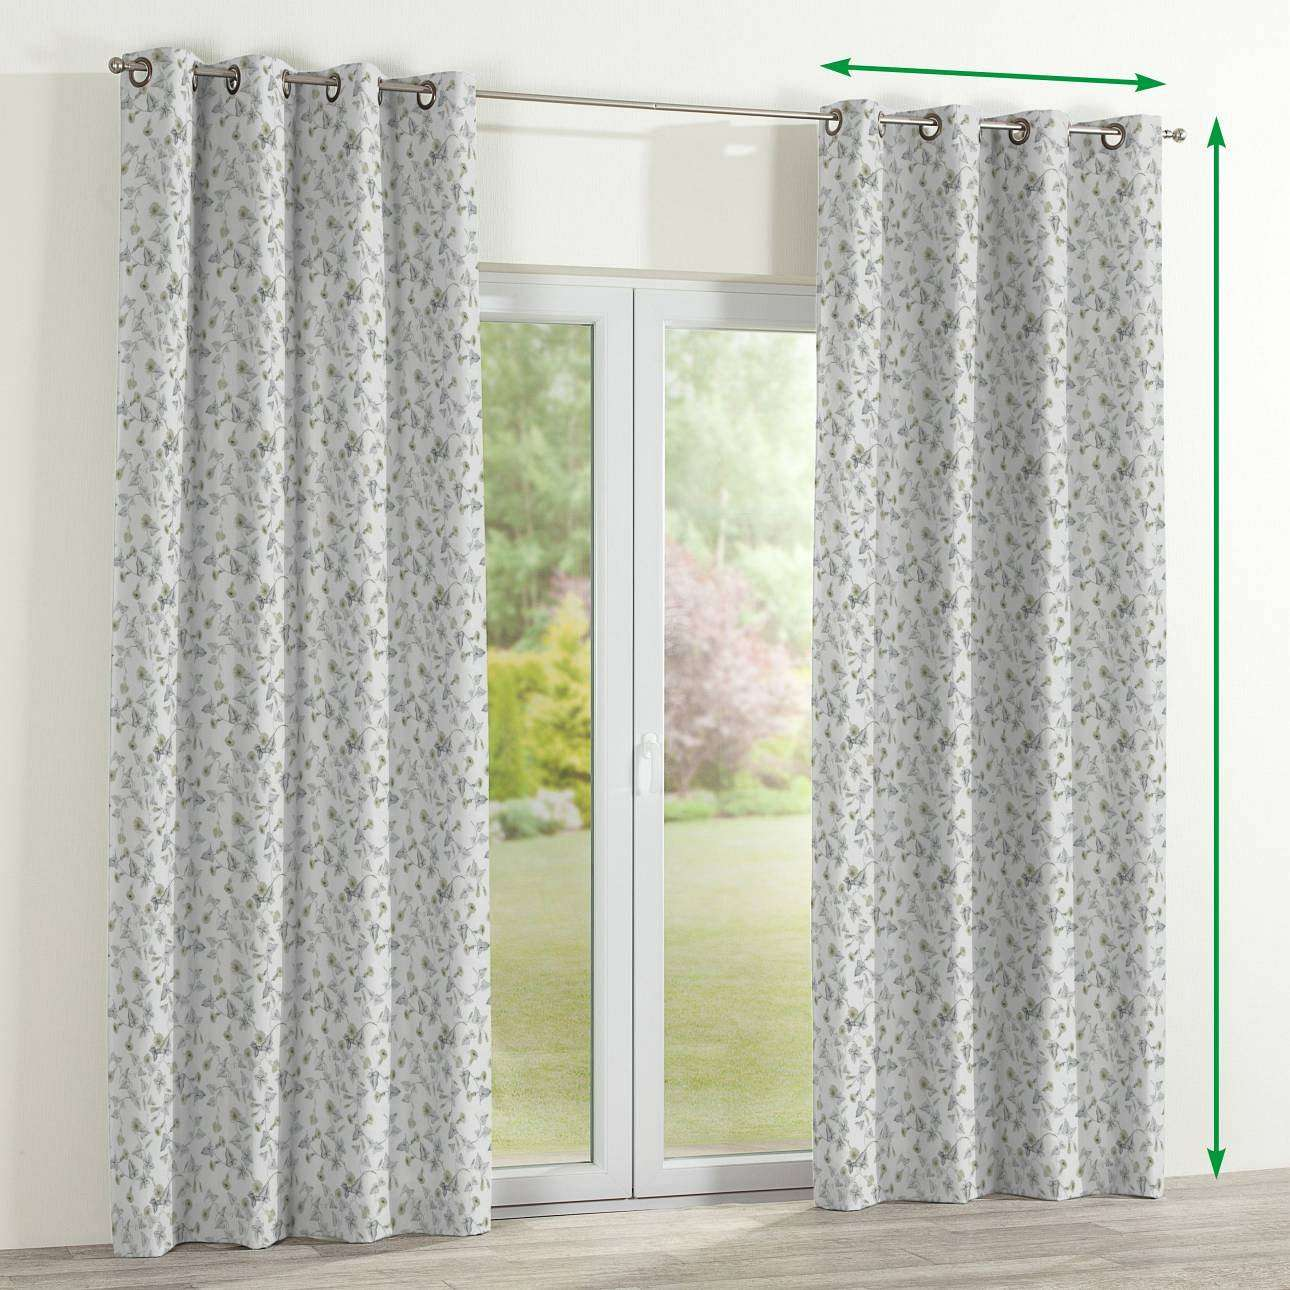 Eyelet lined curtains in collection Mirella, fabric: 140-42